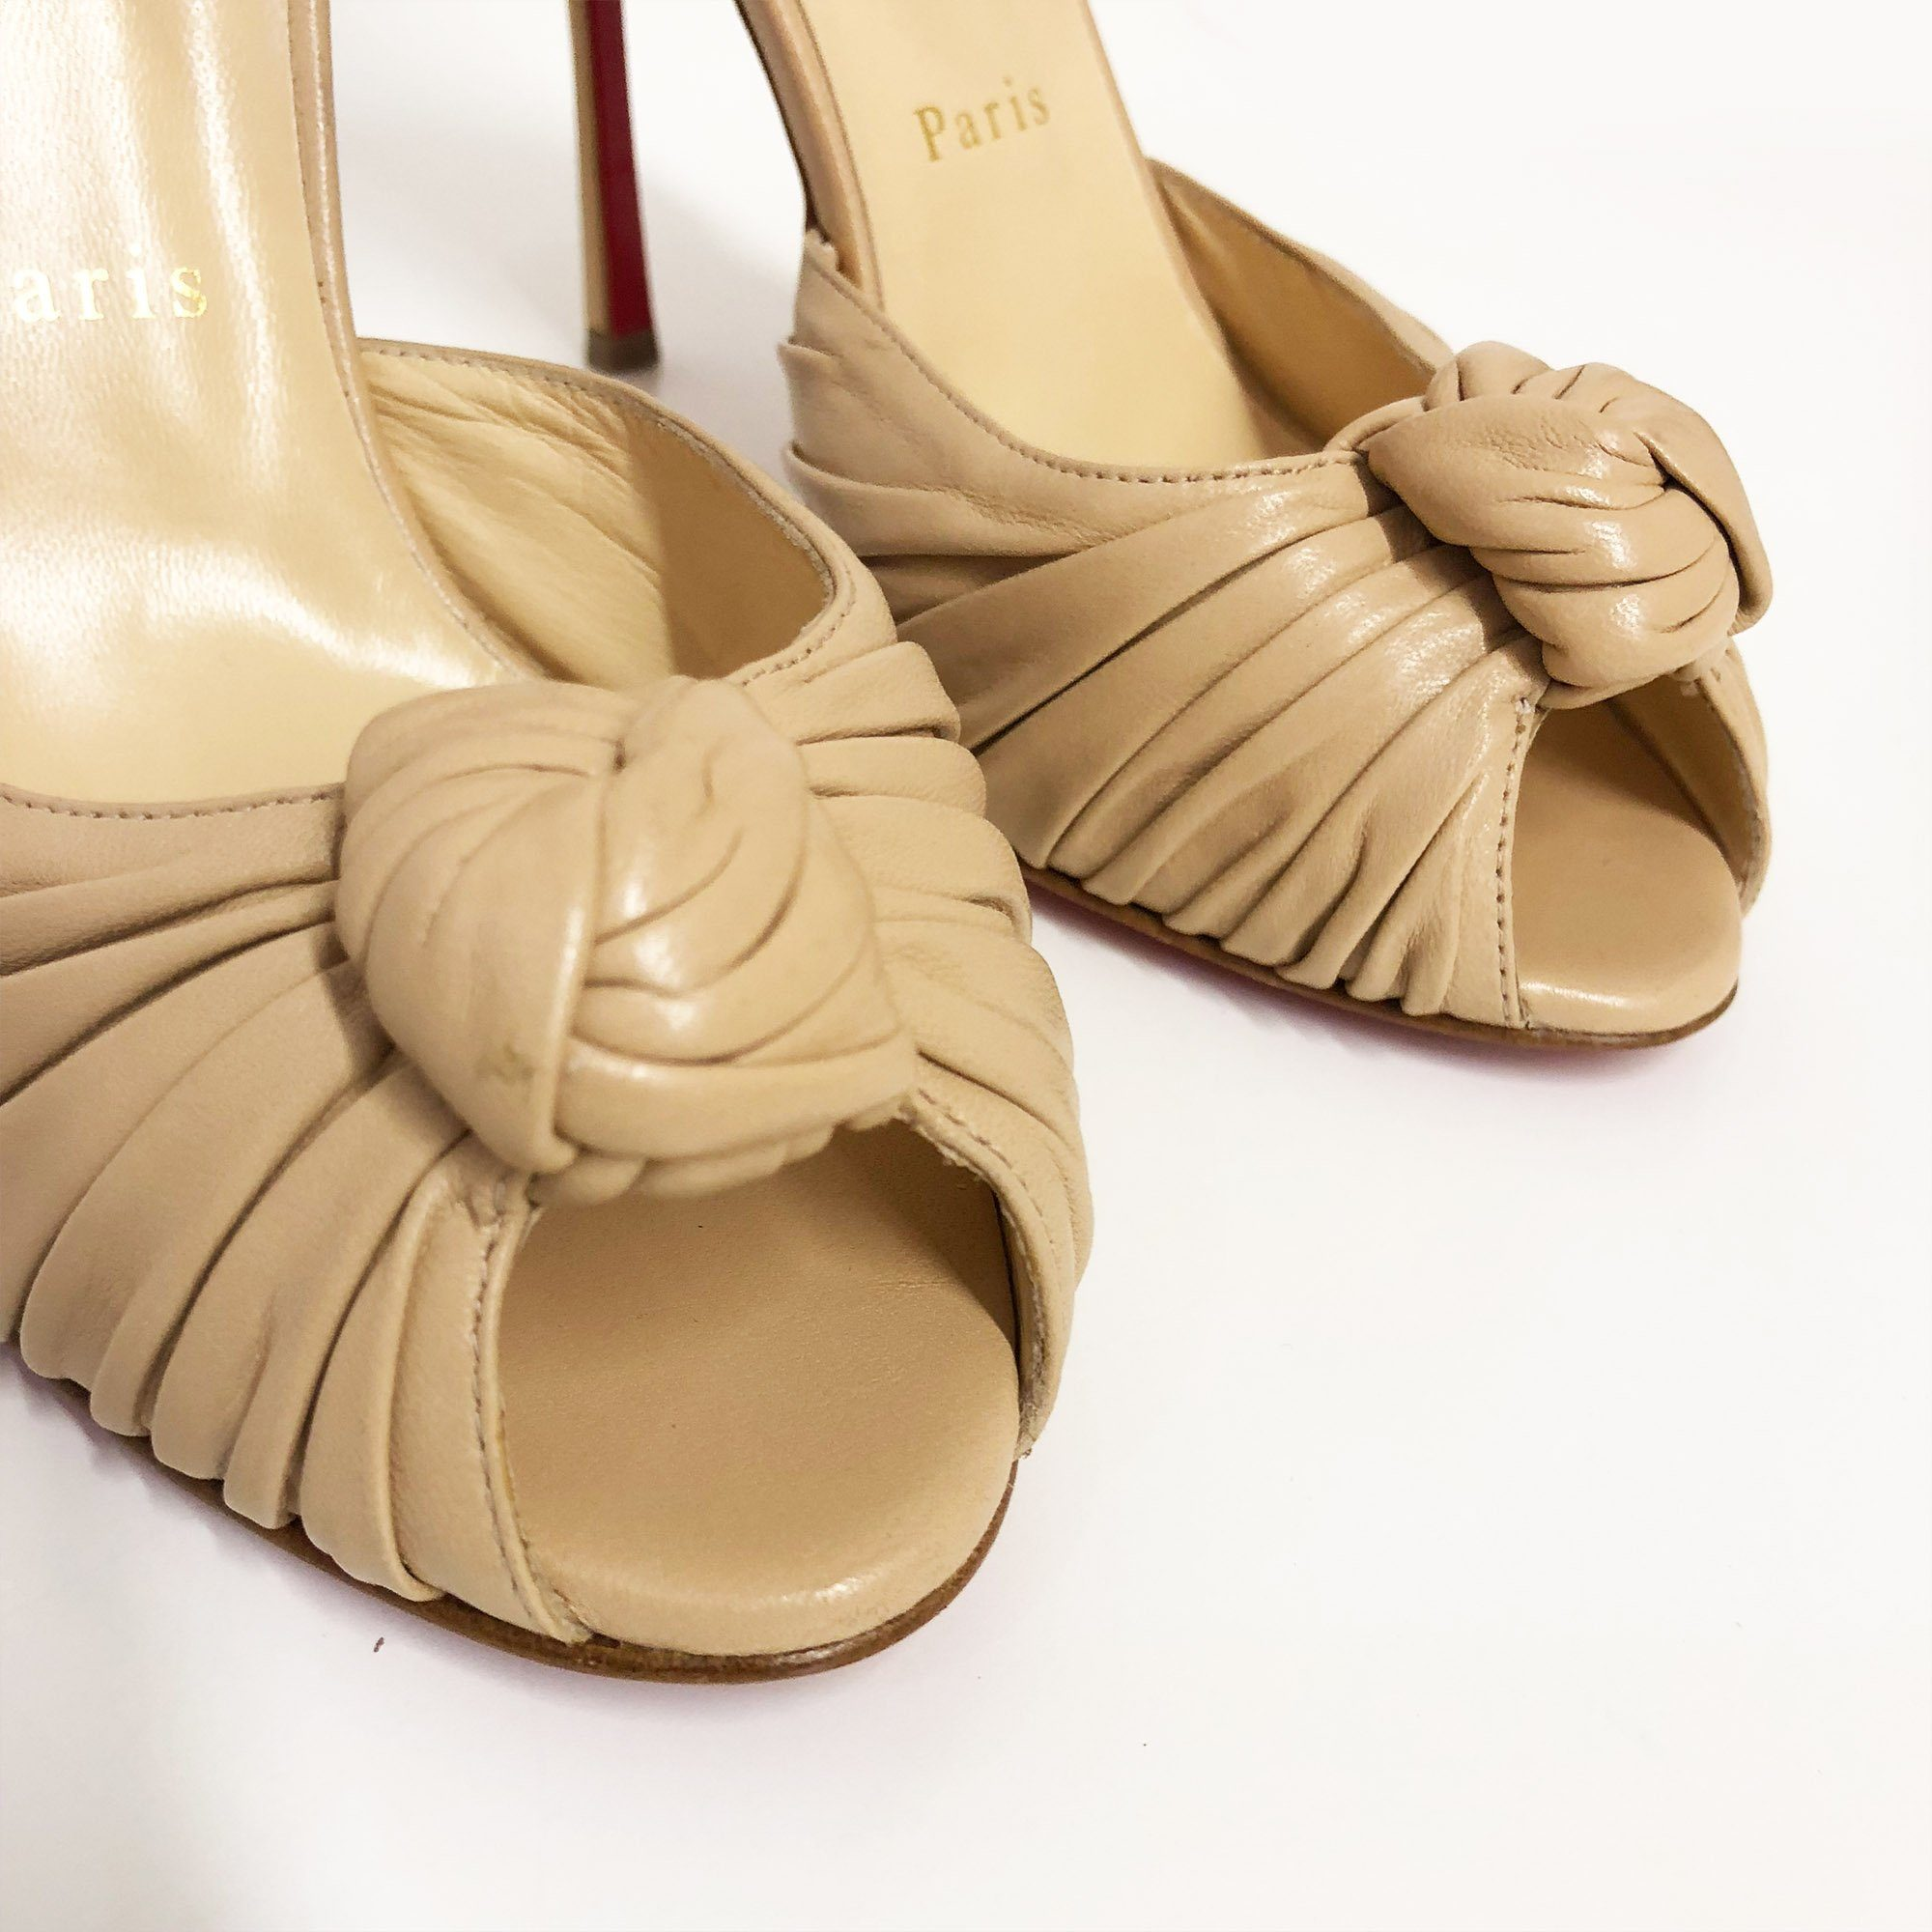 Christian Louboutin Beige Leather Knotted Marchavekel Sandal Pumps